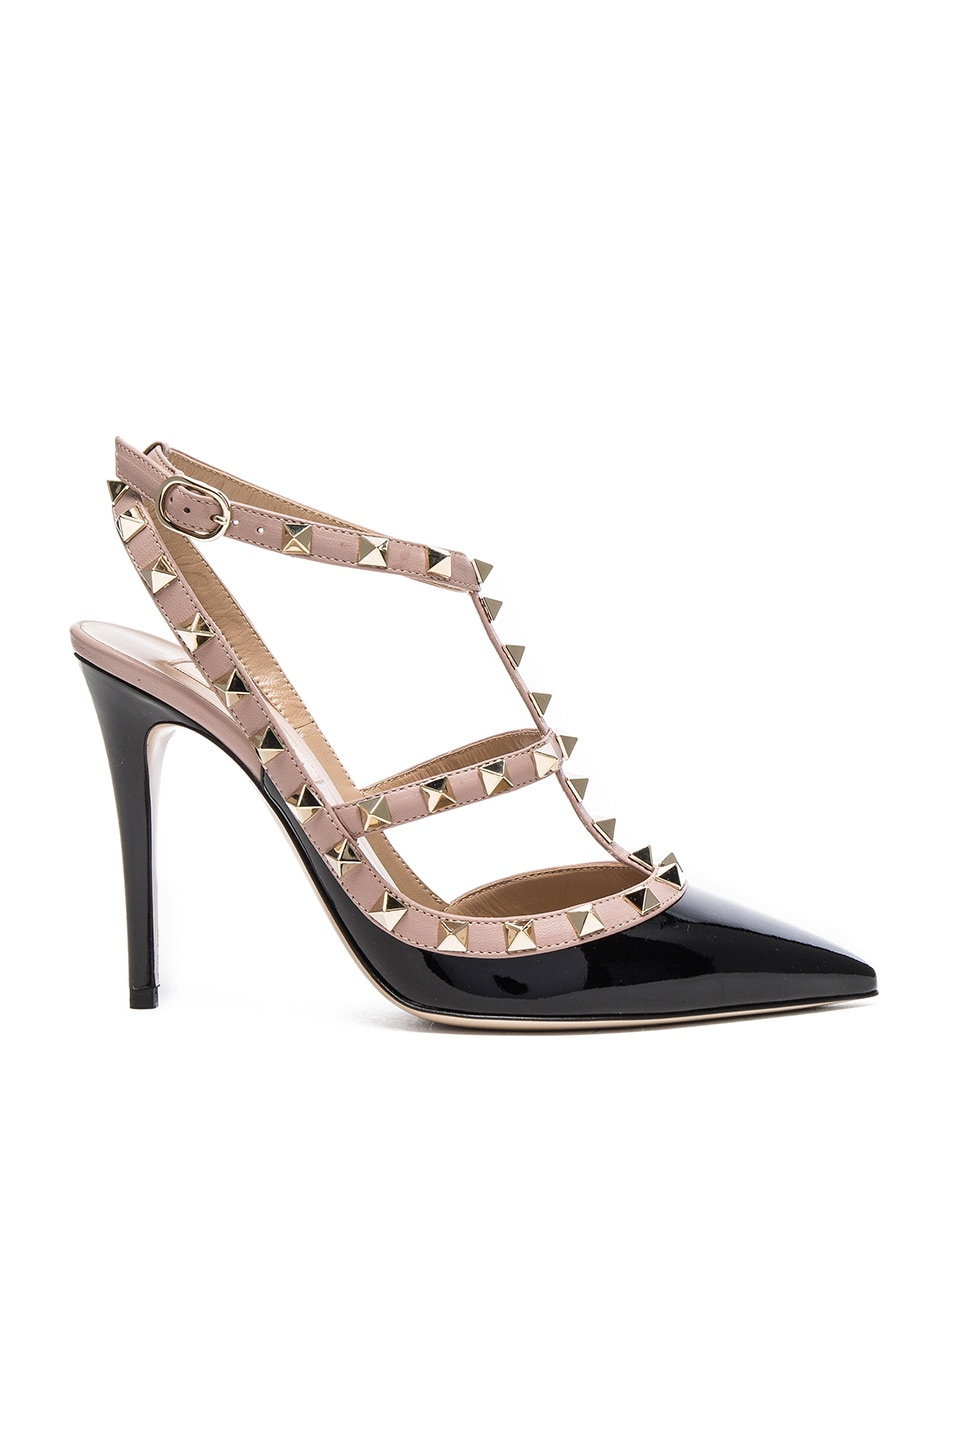 Image 1 of Valentino Rockstud Patent Leather Ankle Strap Heels in Black & Poudre